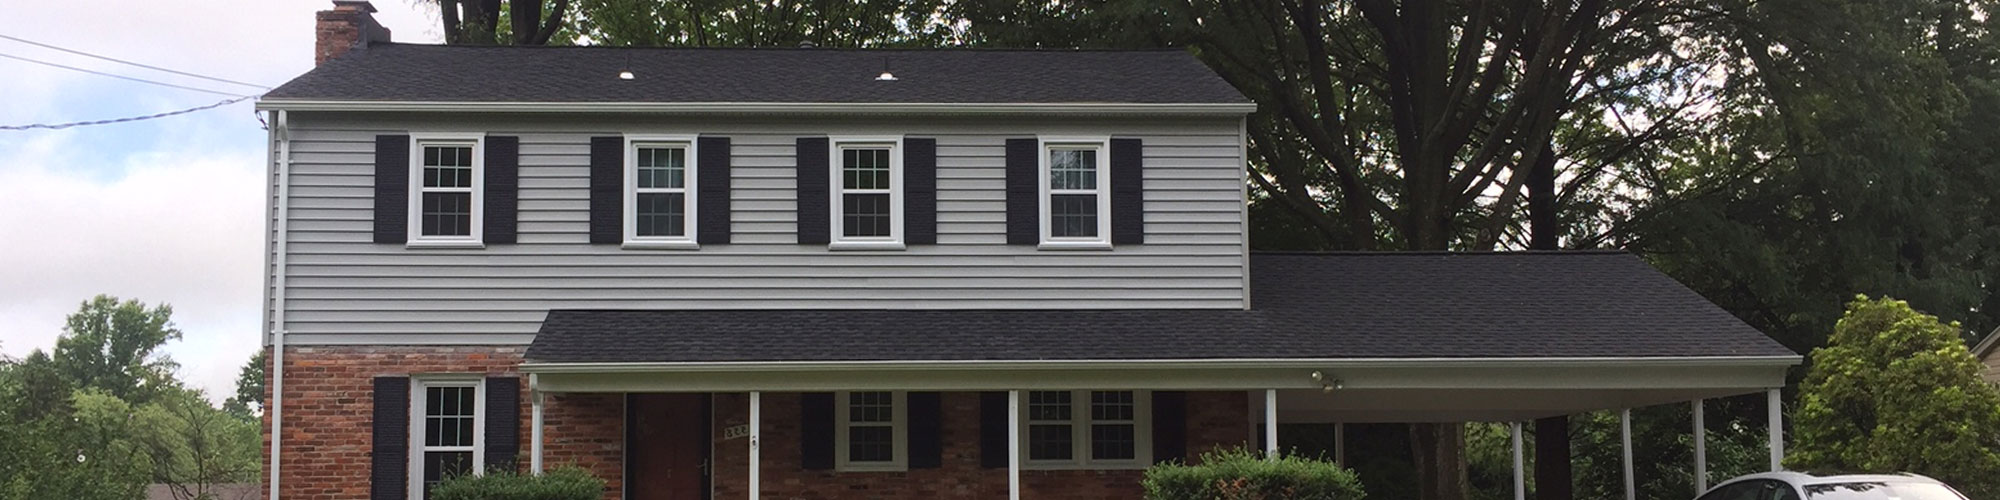 Your Exterior Experts For Roofing & Gutters